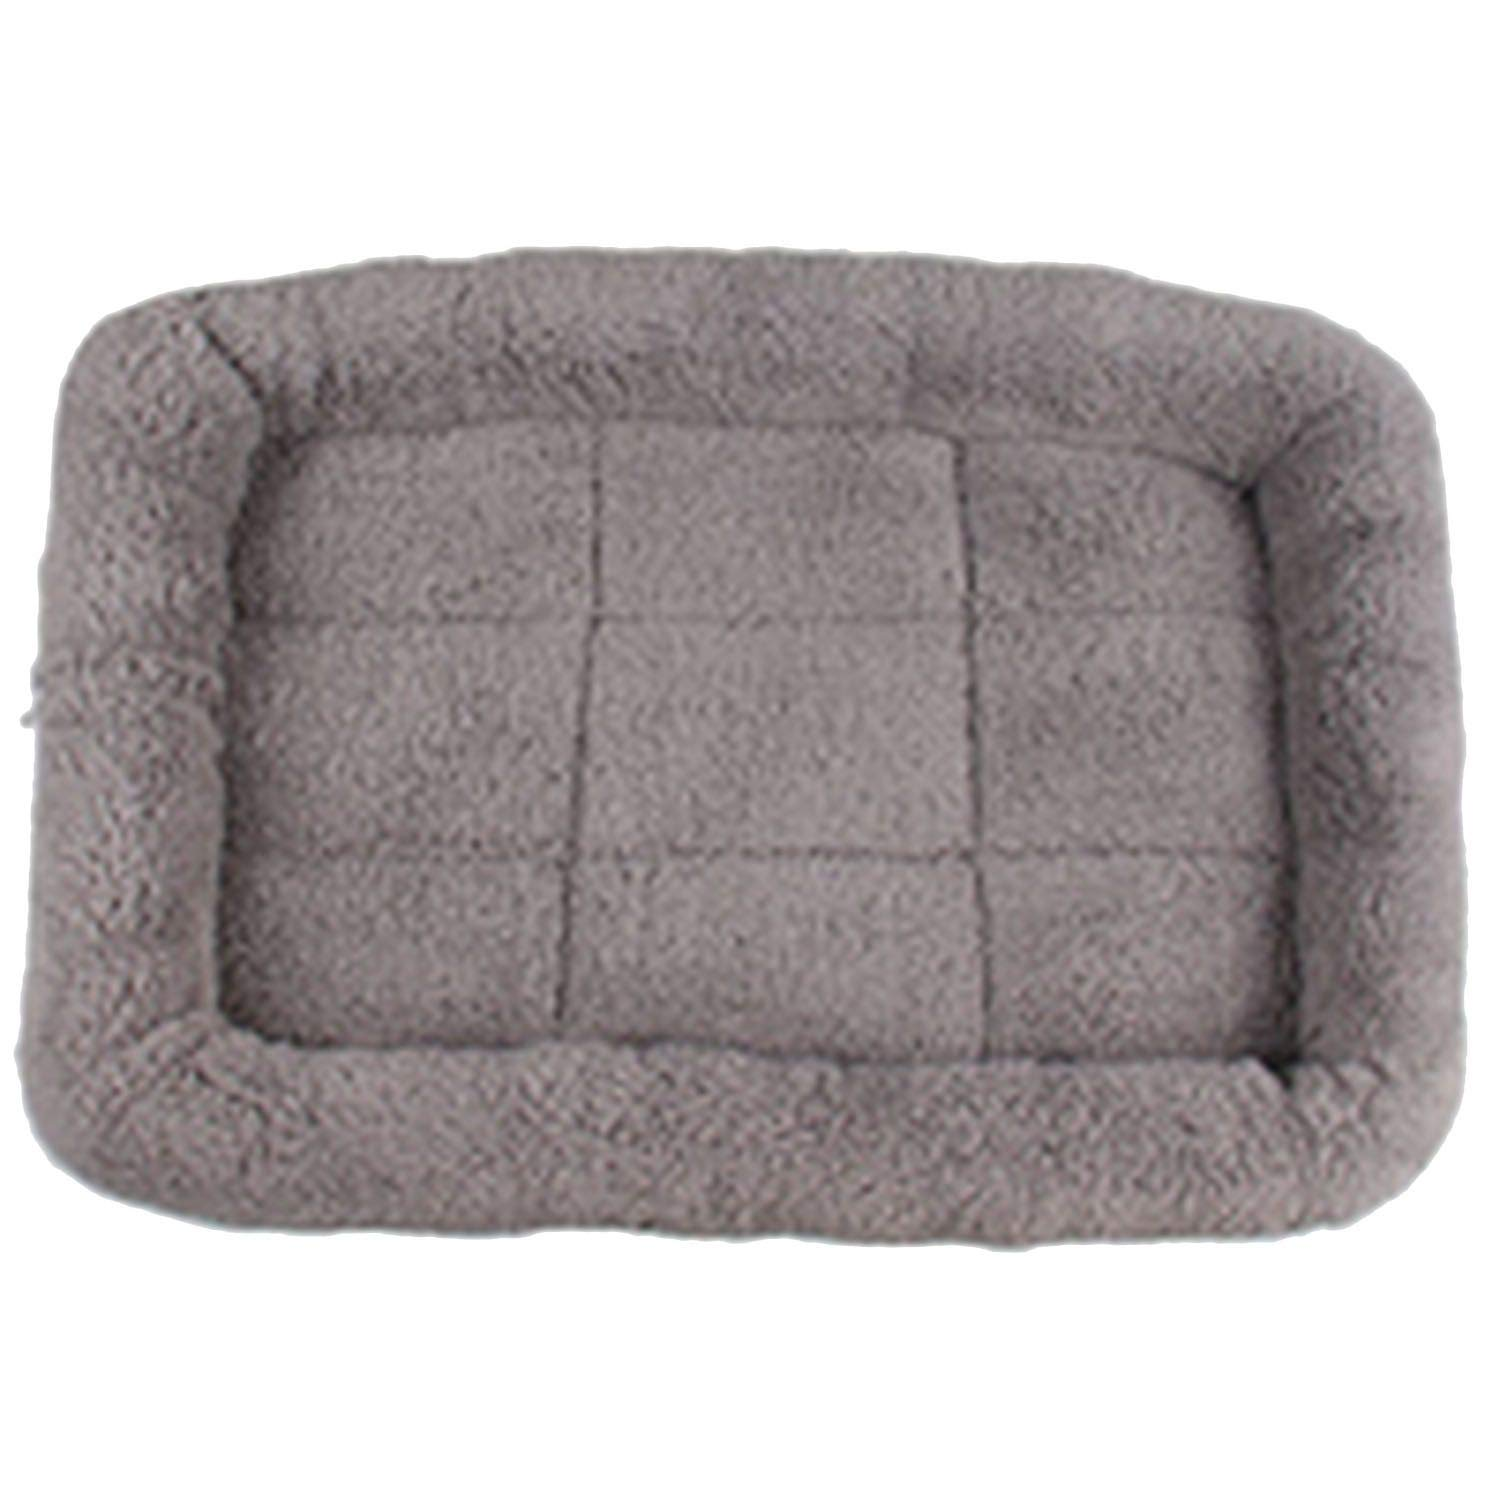 Grey Xl Grey Xl Pet Dog Beds Mat House Kennels Beds Cover Softy Dog House Pet Cat Bed for Large Dog Blanket Cushion,Grey,Xl